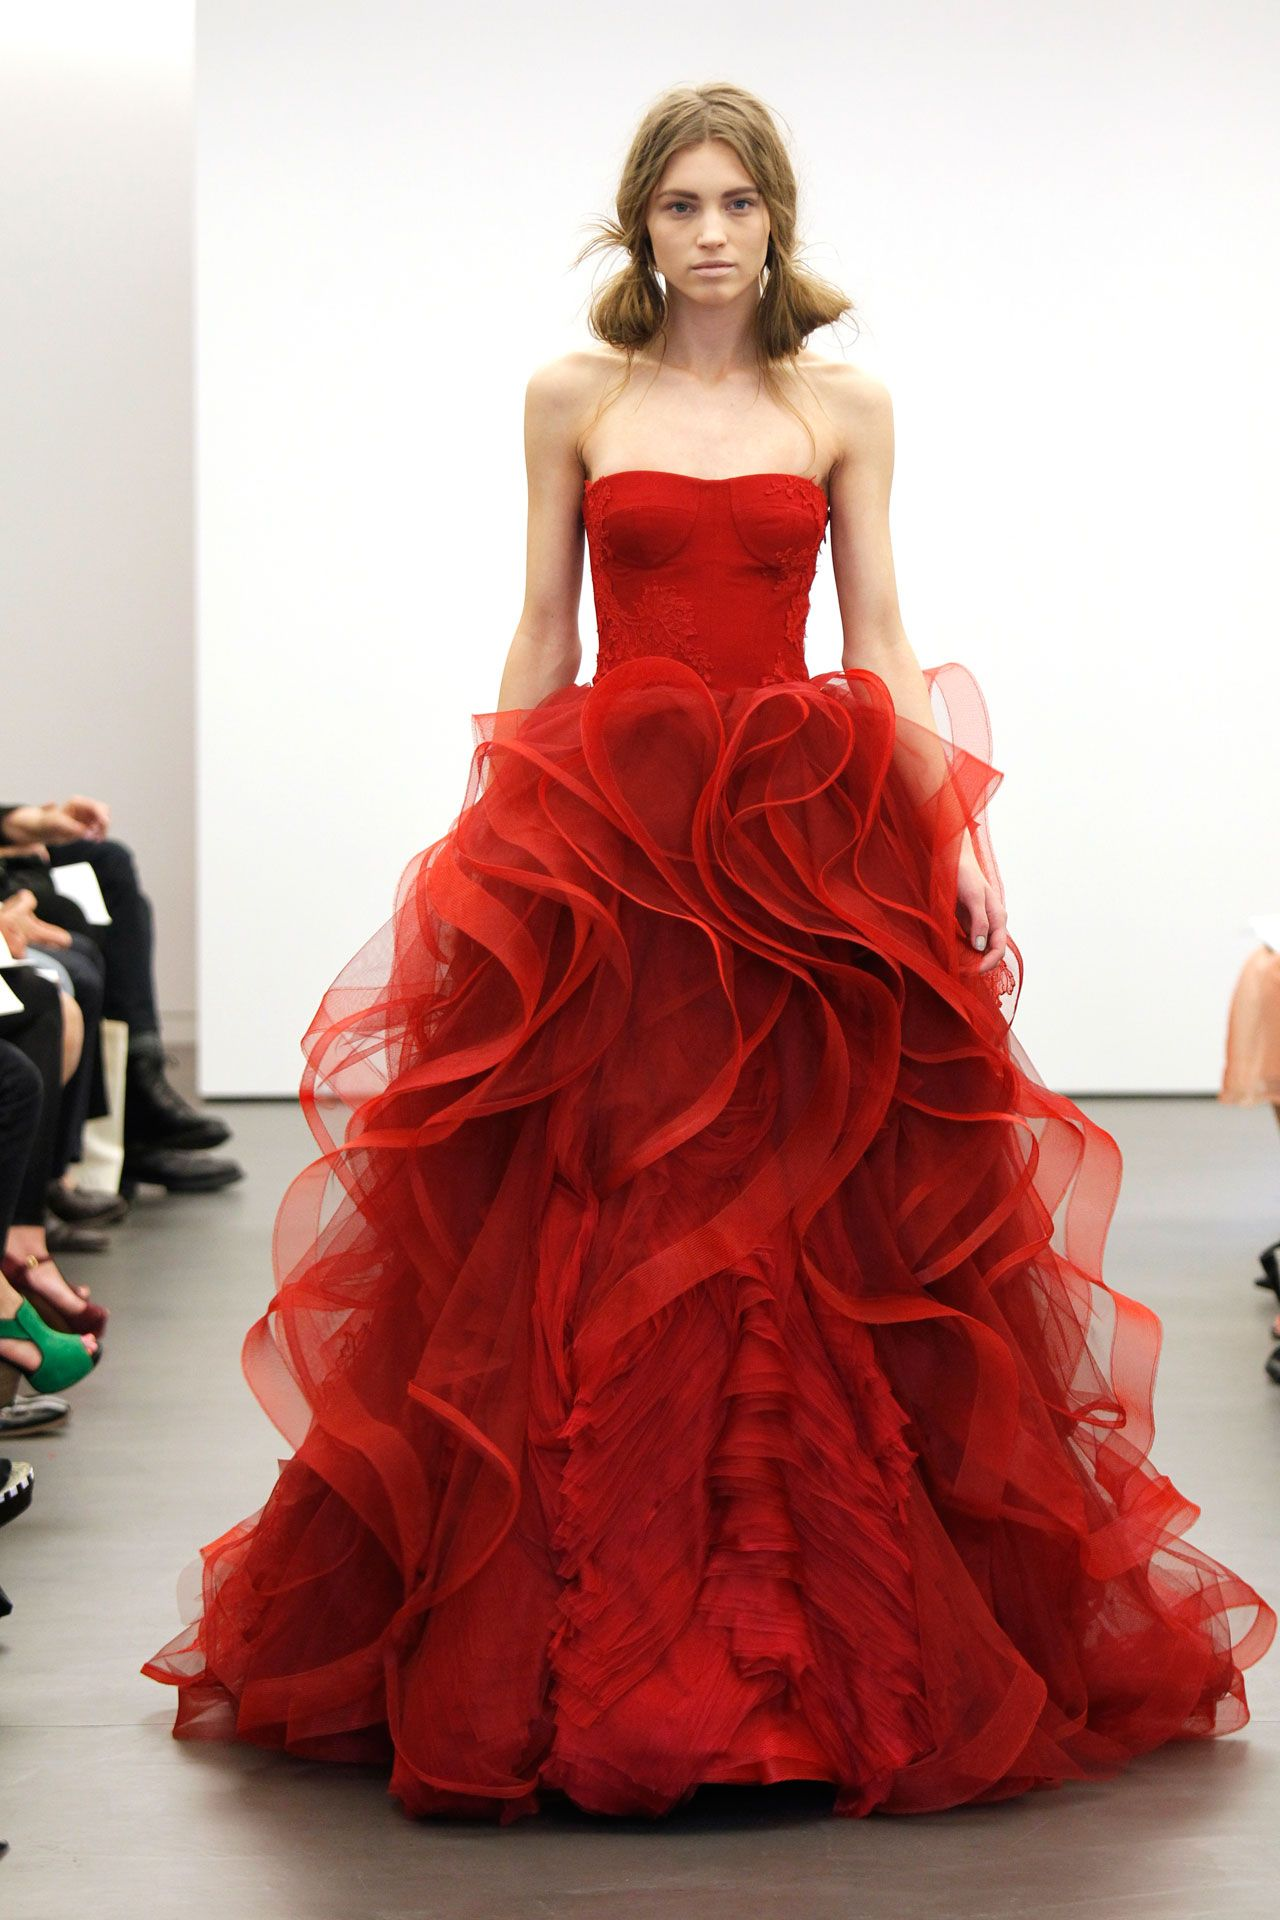 Incredible red wedding dress from Vera Wang (BridesMagazine.co.uk) 77d1d2f42